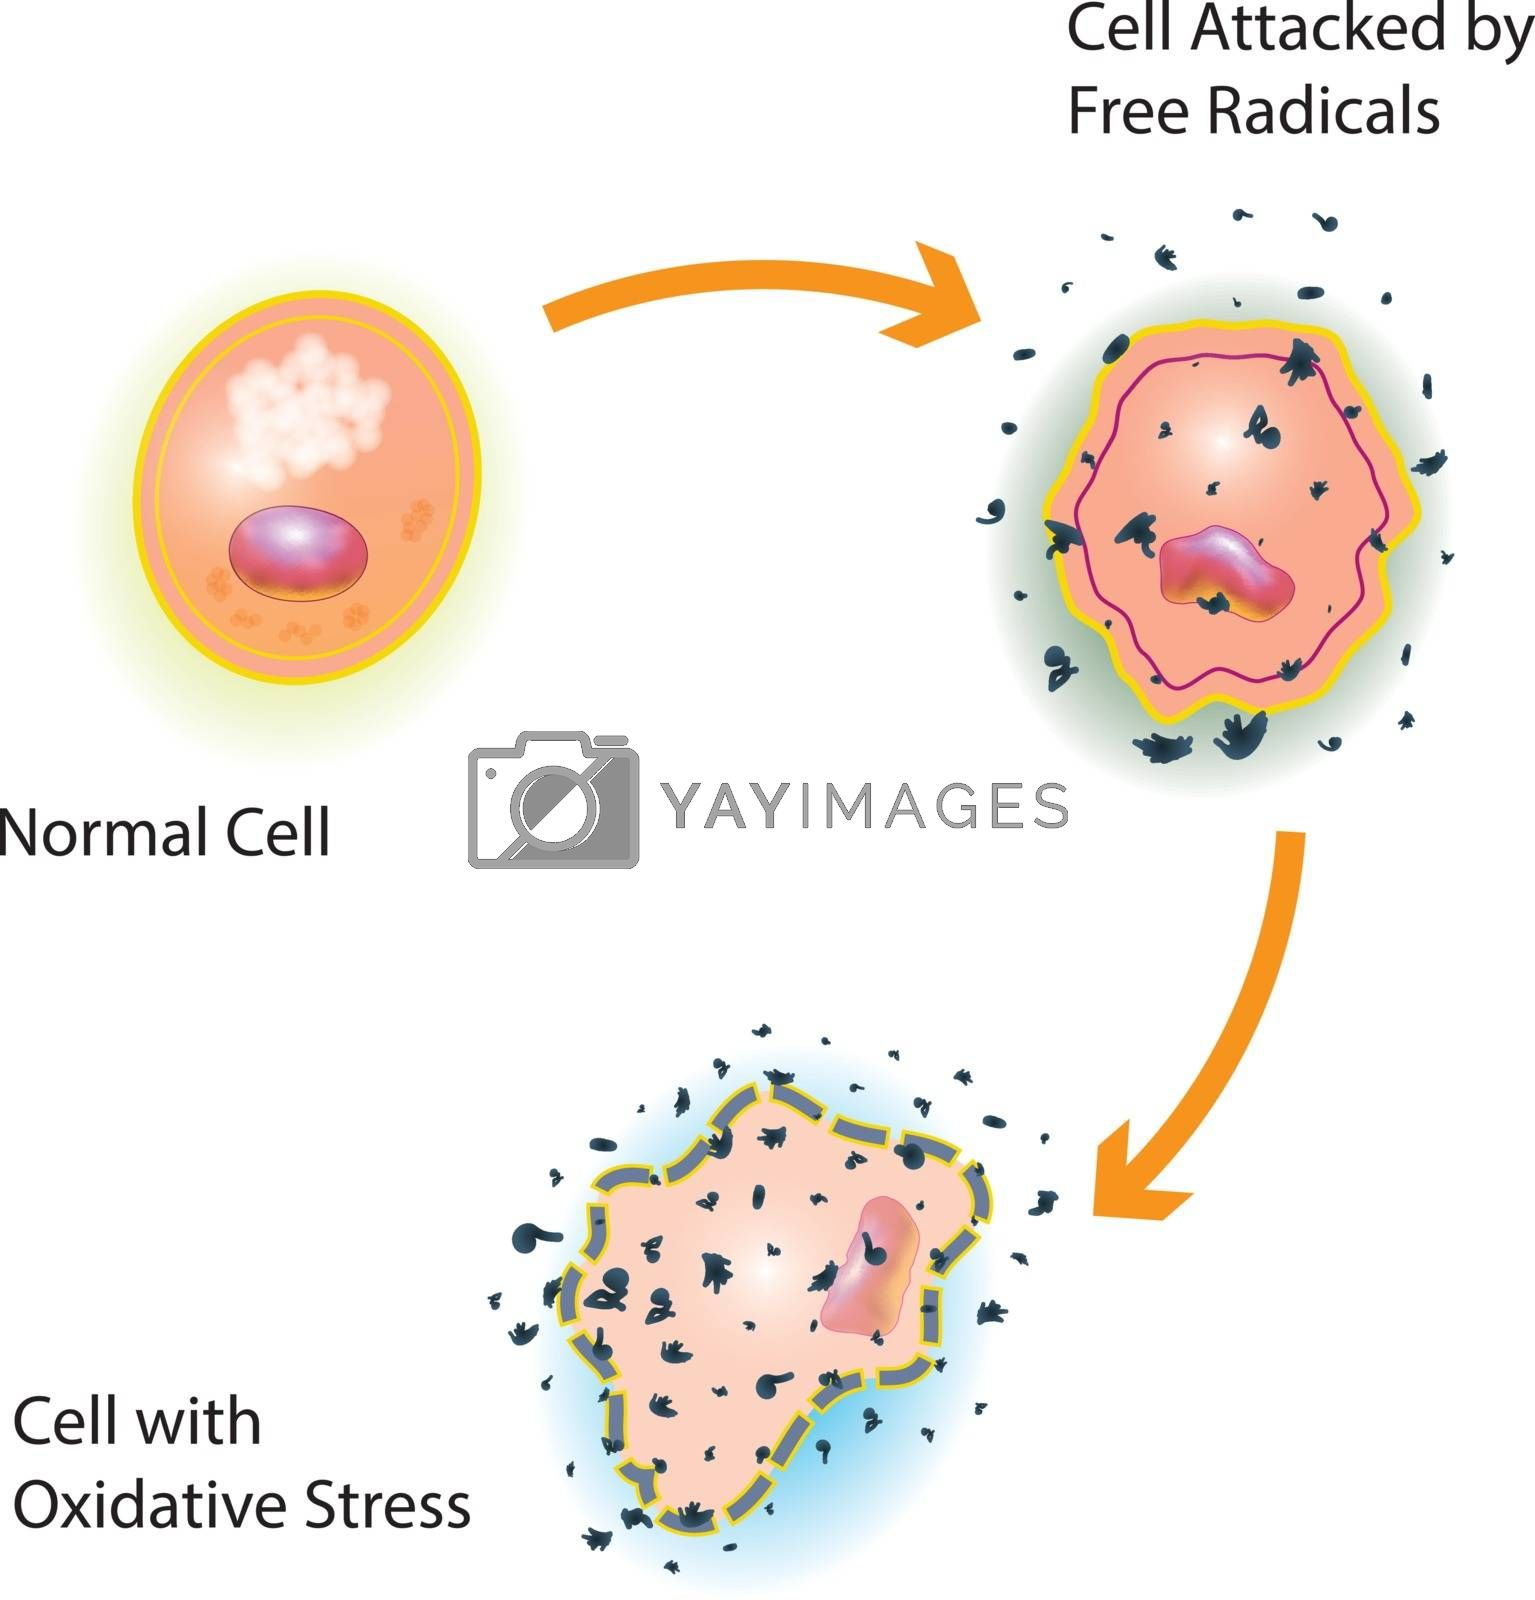 Oxidative stress of a healthy cell caused by an attack of free radicals